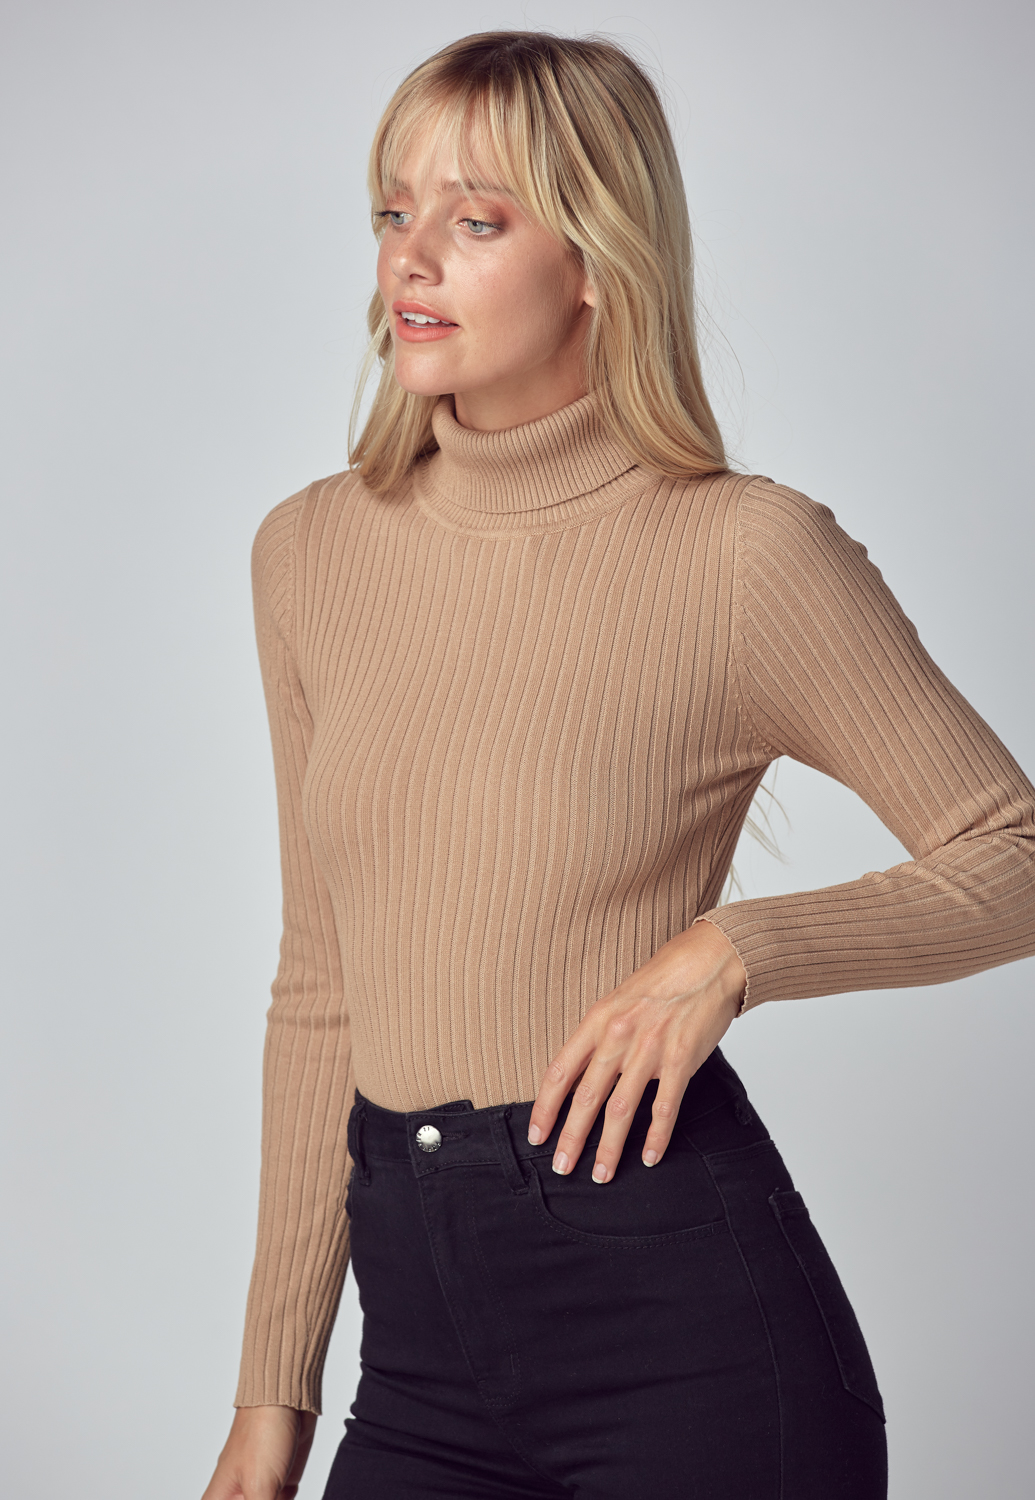 Turtleneck Bodysuit Sweater